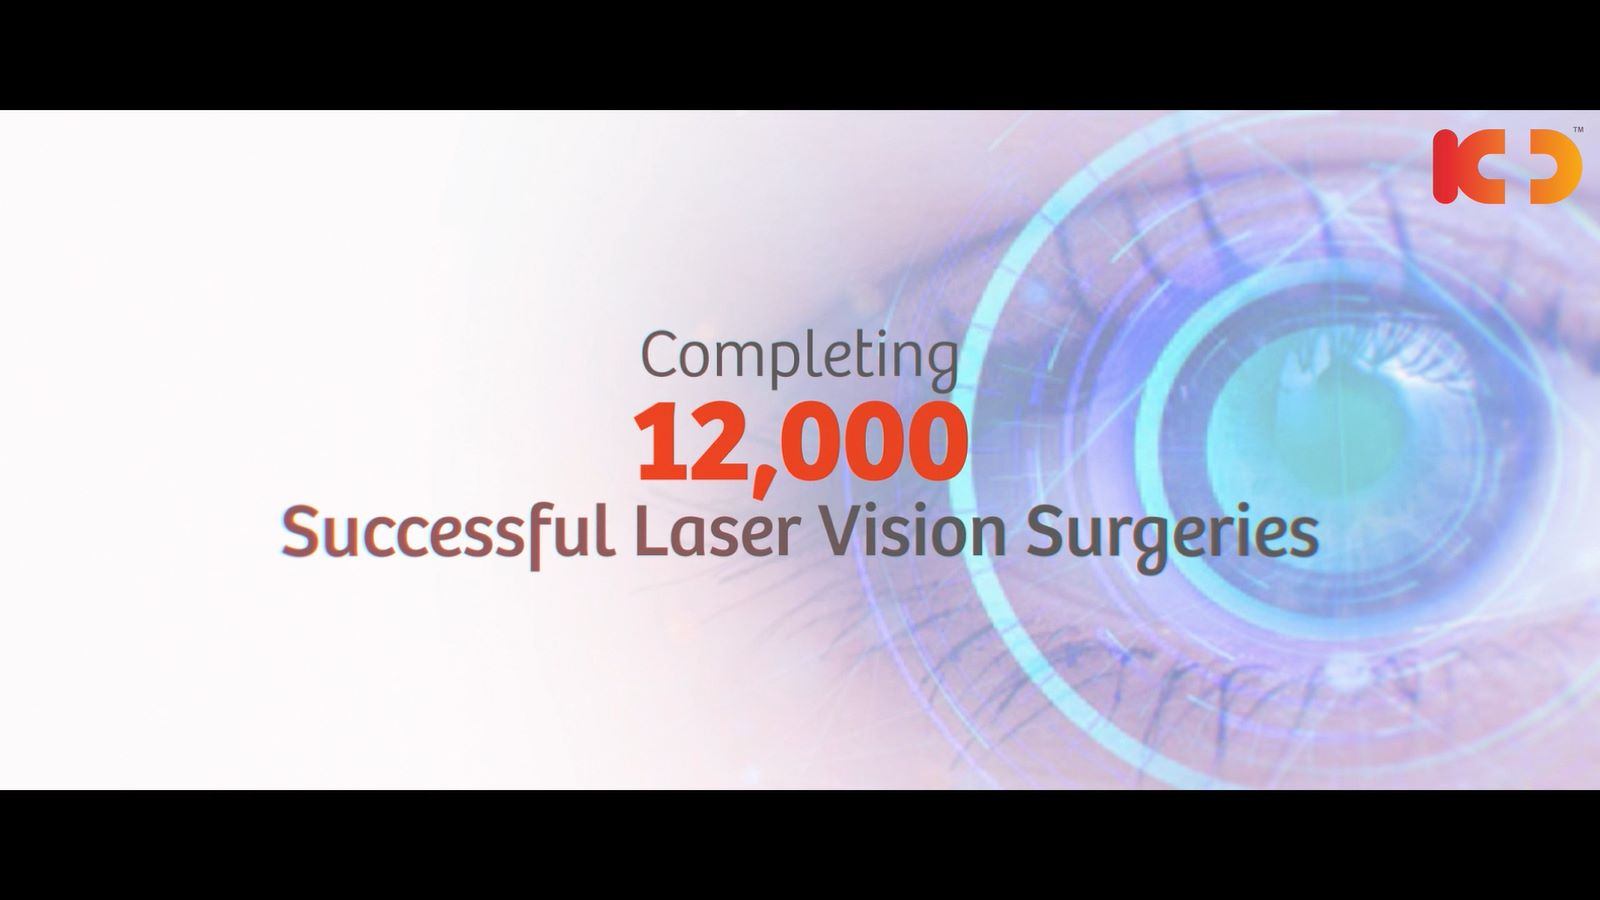 Our Ophthalmology Team takes pride in announcing that we've successfully completed Path-breaking 12,000 Lasik Procedures and given the gift of clear vision to many.  Vision Correction is one of our forte and we are honoured that you choose us to be a part of your journey towards a spectacle free world.   Call +918980280802 to book your appointment for Lasik Eye Check-Up Now.  #KDHospital #Lasik #LasikSurgery #Ophthalmology #EyeCare #EyeSurgery #Safety #PatientSafety #SafetyComesFirst #SafetyFirst #SafetyMeasures #Diagnosis #Therapeutics #Awareness #wellness #goodhealth #wellnessthatworks #Nusring #NABHHospital #QualityCare #hospitals #healthcare #physicians #surgeon #Ahmedabad #Gujarat #India